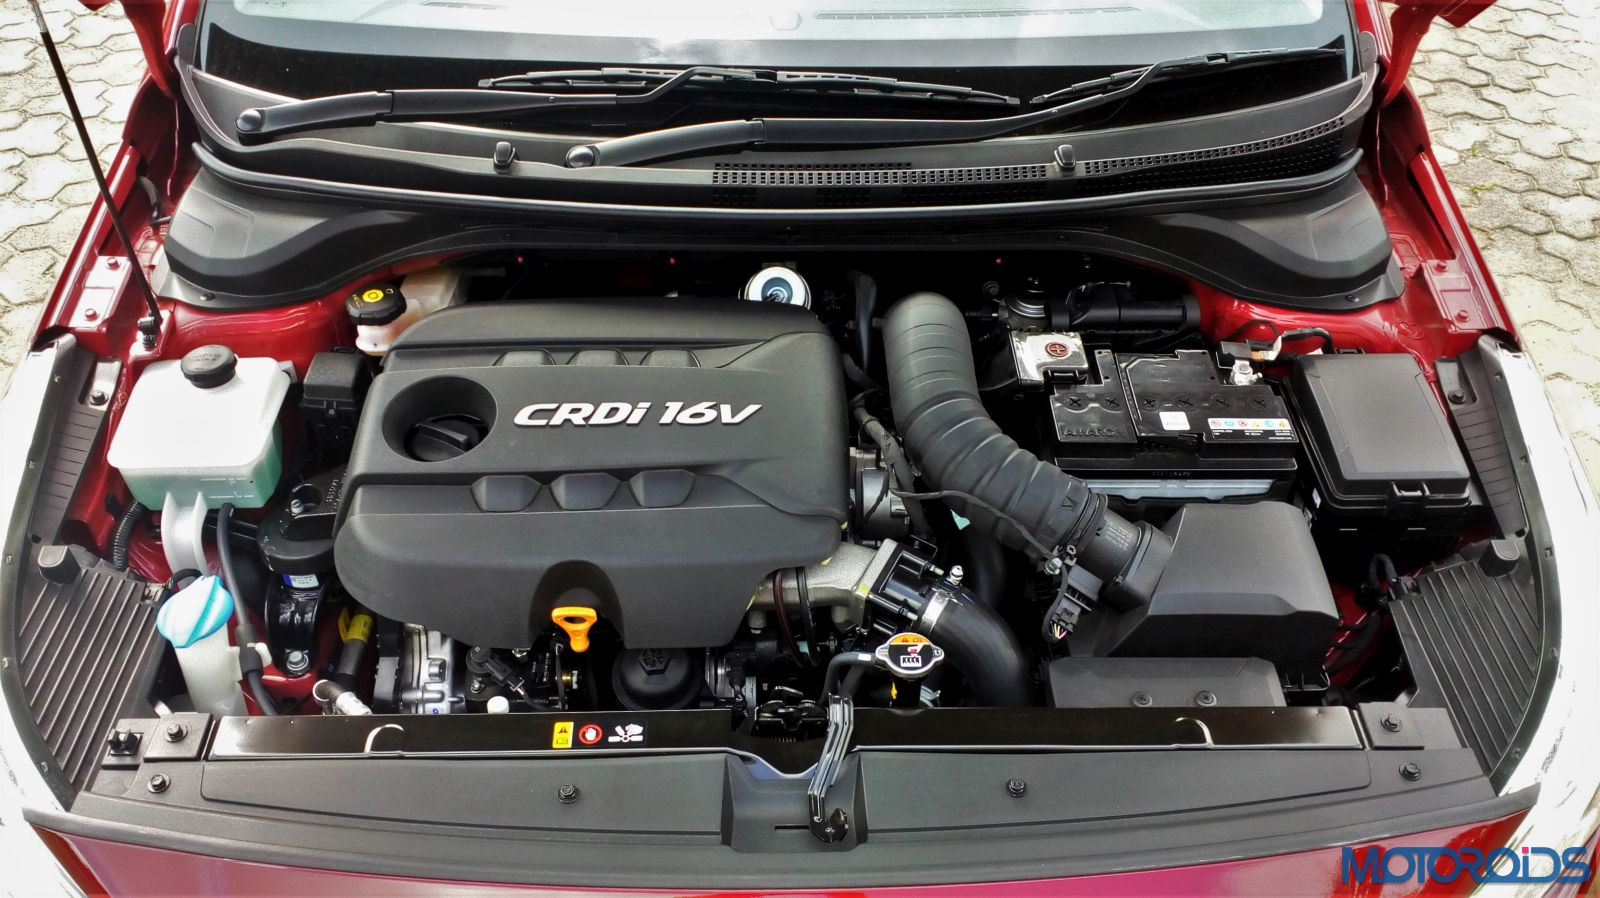 August 28, 2017-New-2017-Next-gen-Hyundai-Verna-1.6-diesel-engine-bay-21.jpg